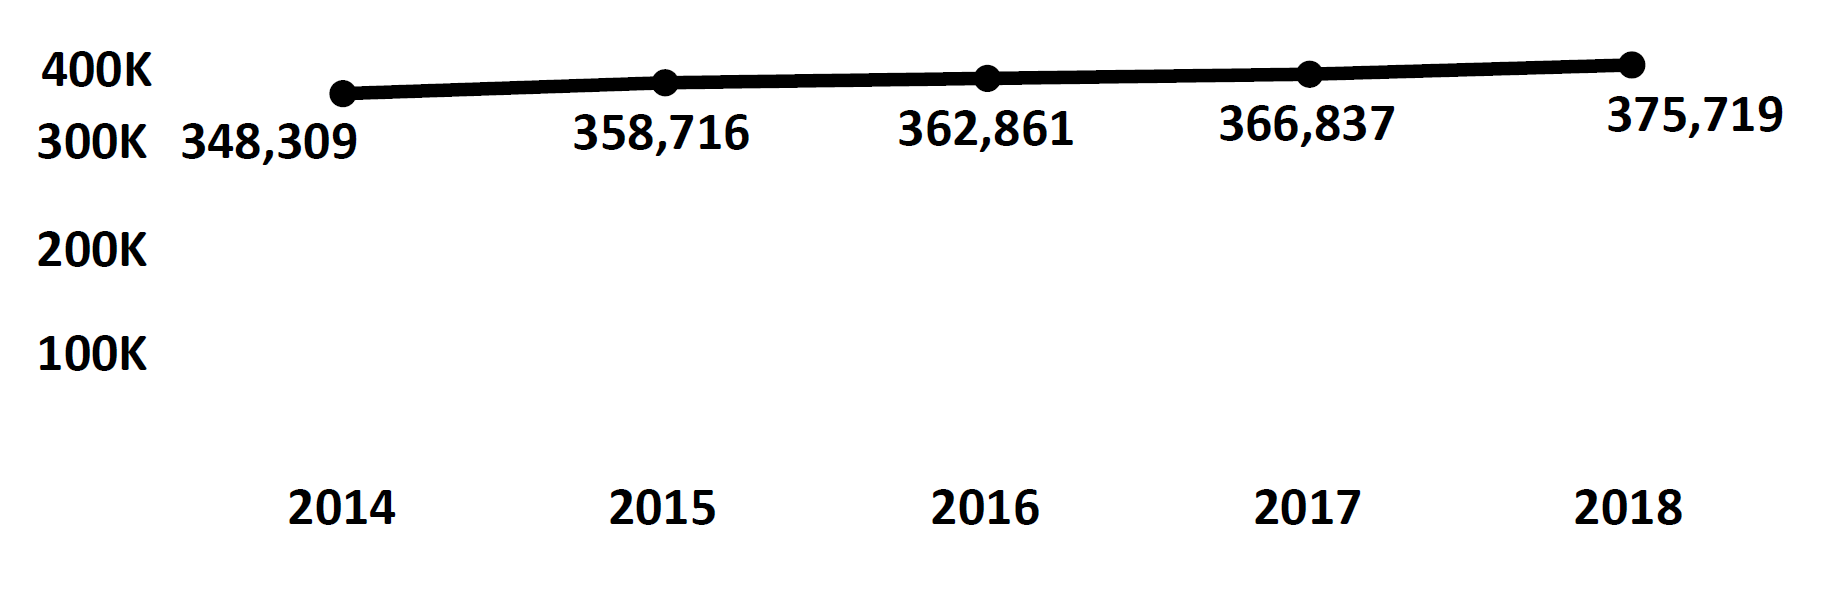 Graph of active Do Not Call registrations in Alaska each fiscal year from 2014 to 2018. In 2014 there were 348,309 numbers registered, which steadily increased each year. In 2018 there were 375,719 numbers registered.